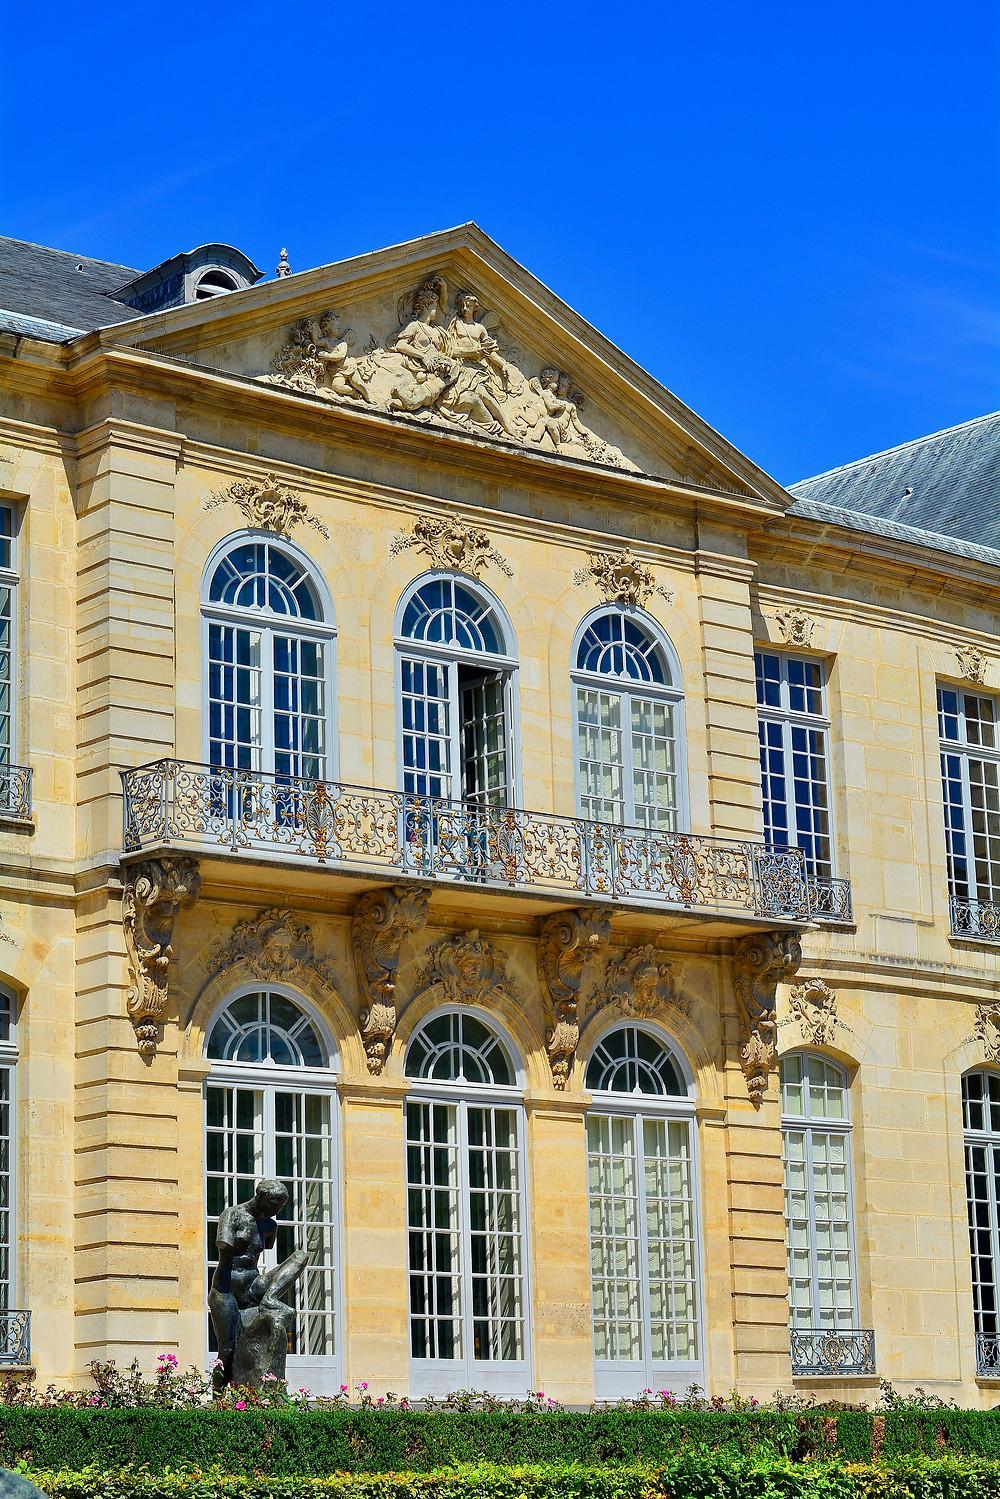 detail of the facade of the Hotel Biron, which houses the Rodin Museum